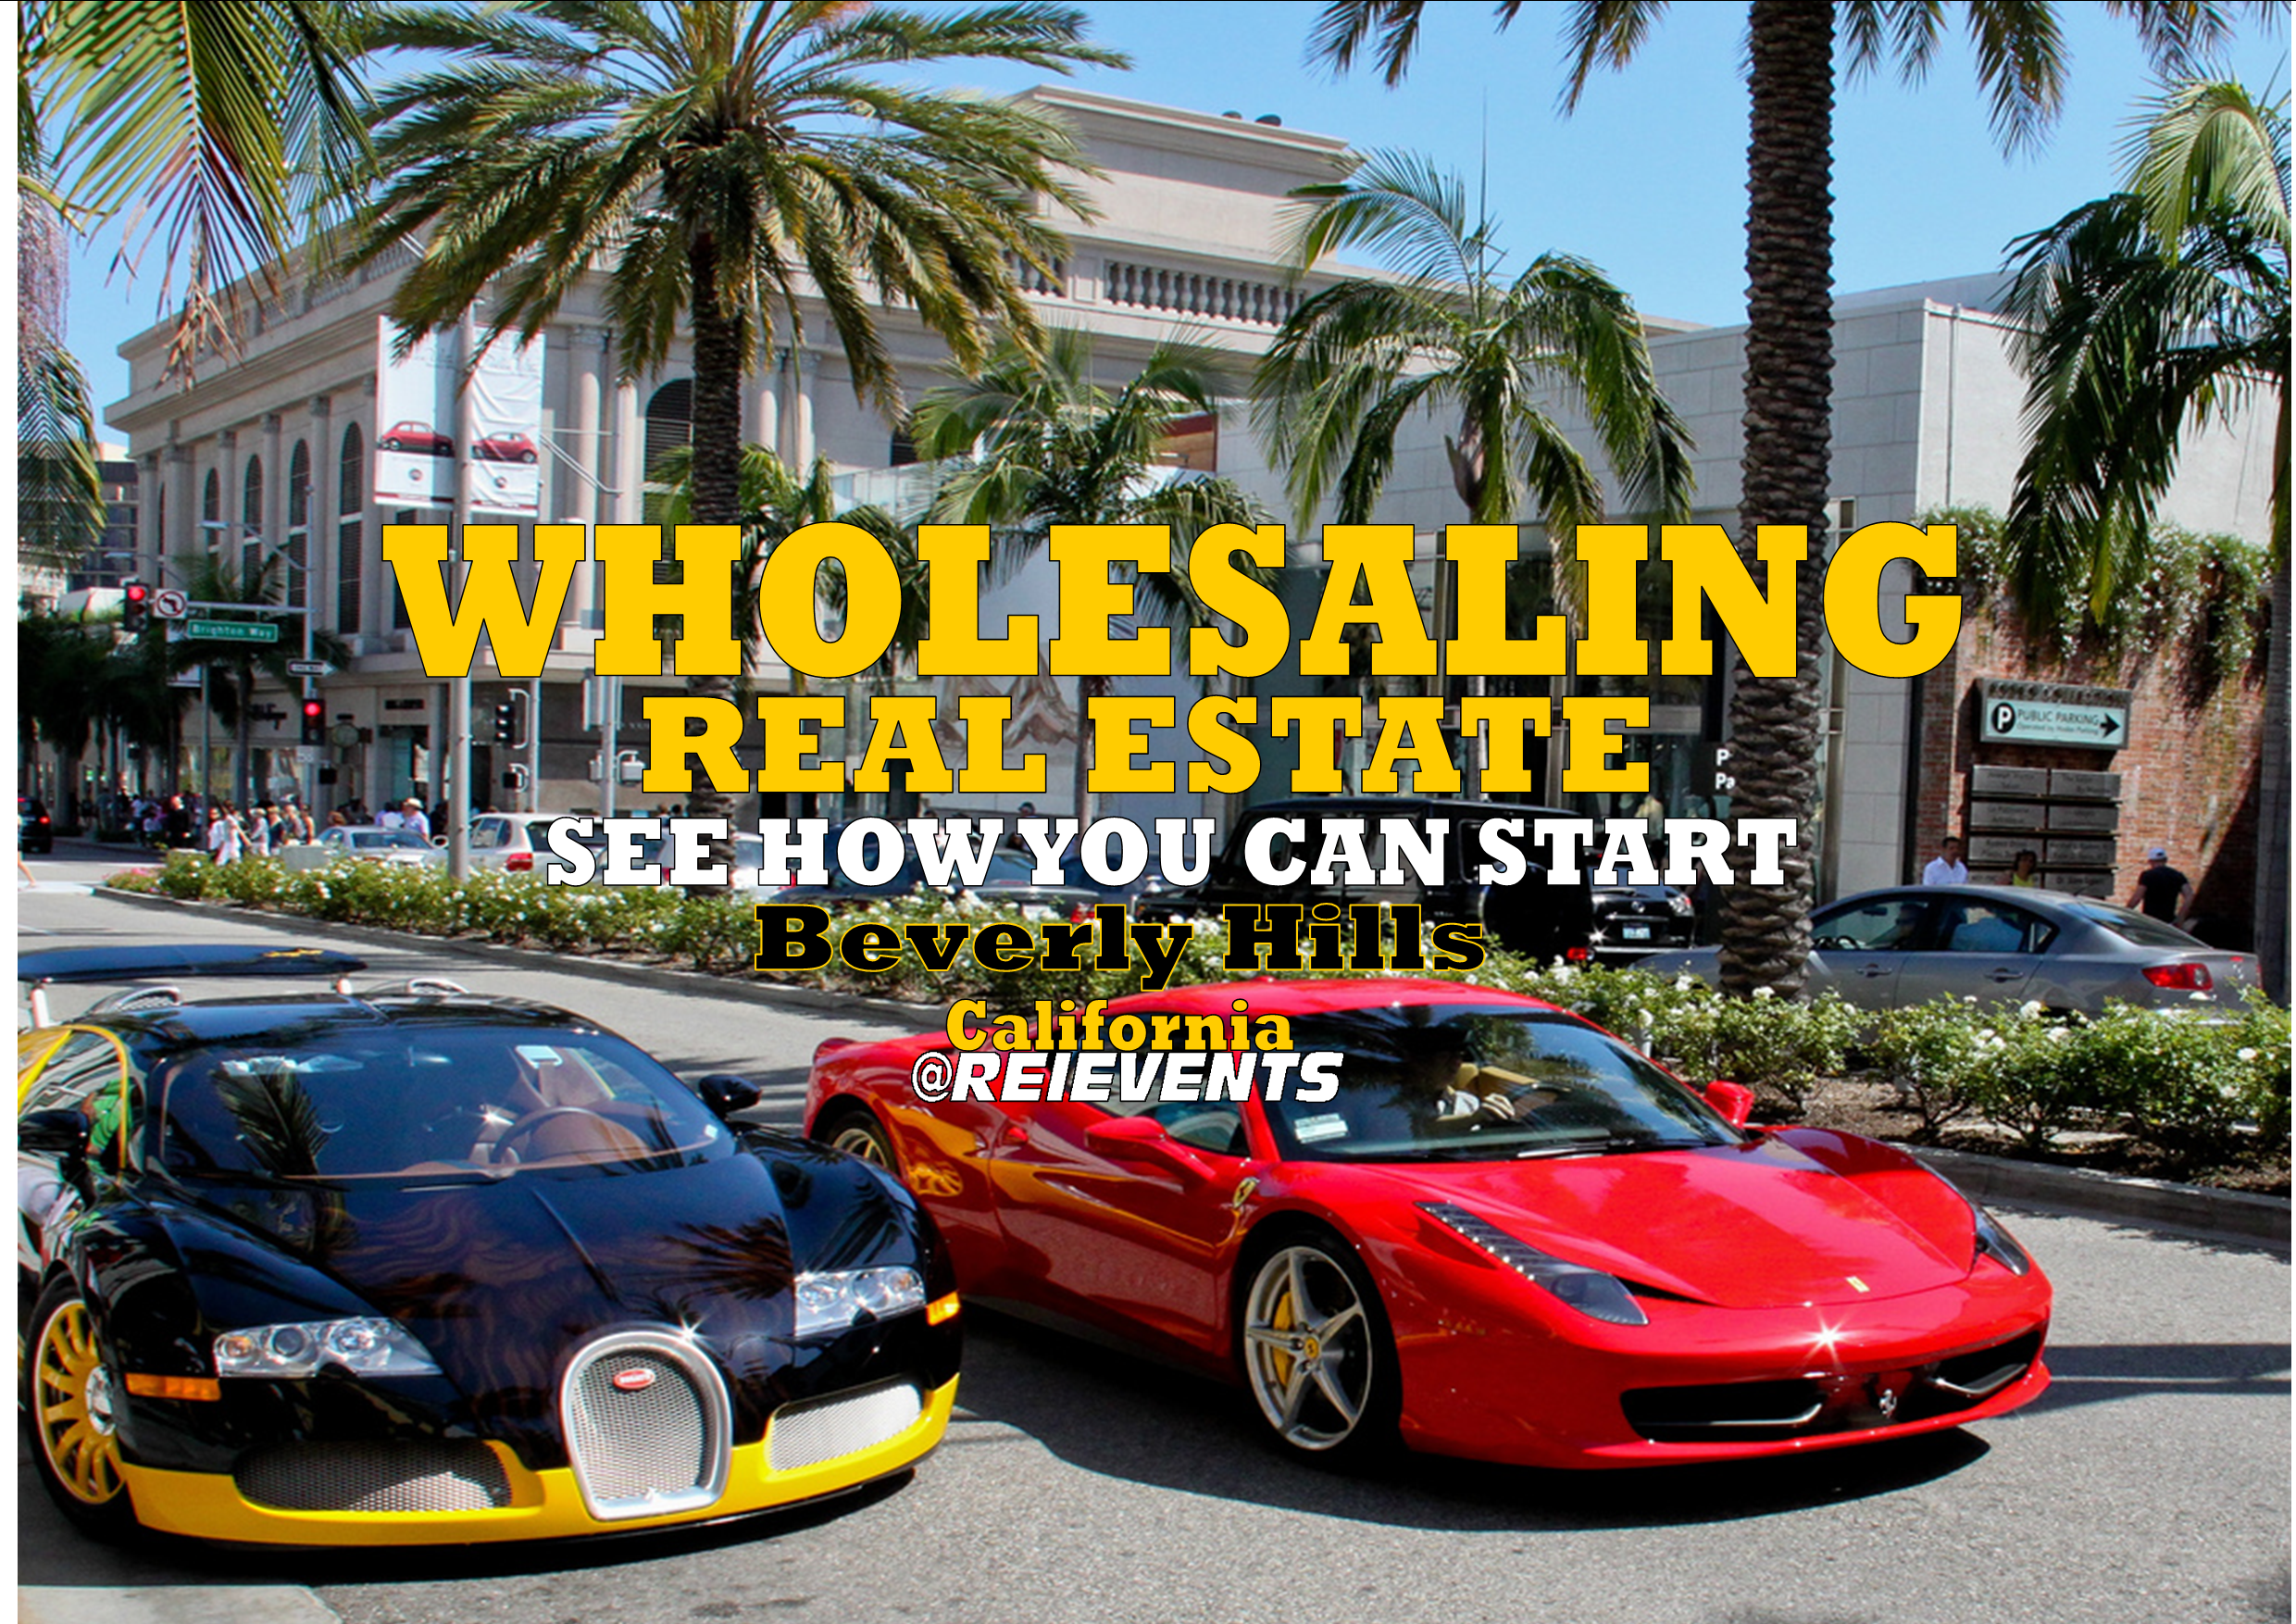 WHOLESALING REAL ESTATE - WEBINAR - BEVERLY HILLS, CA